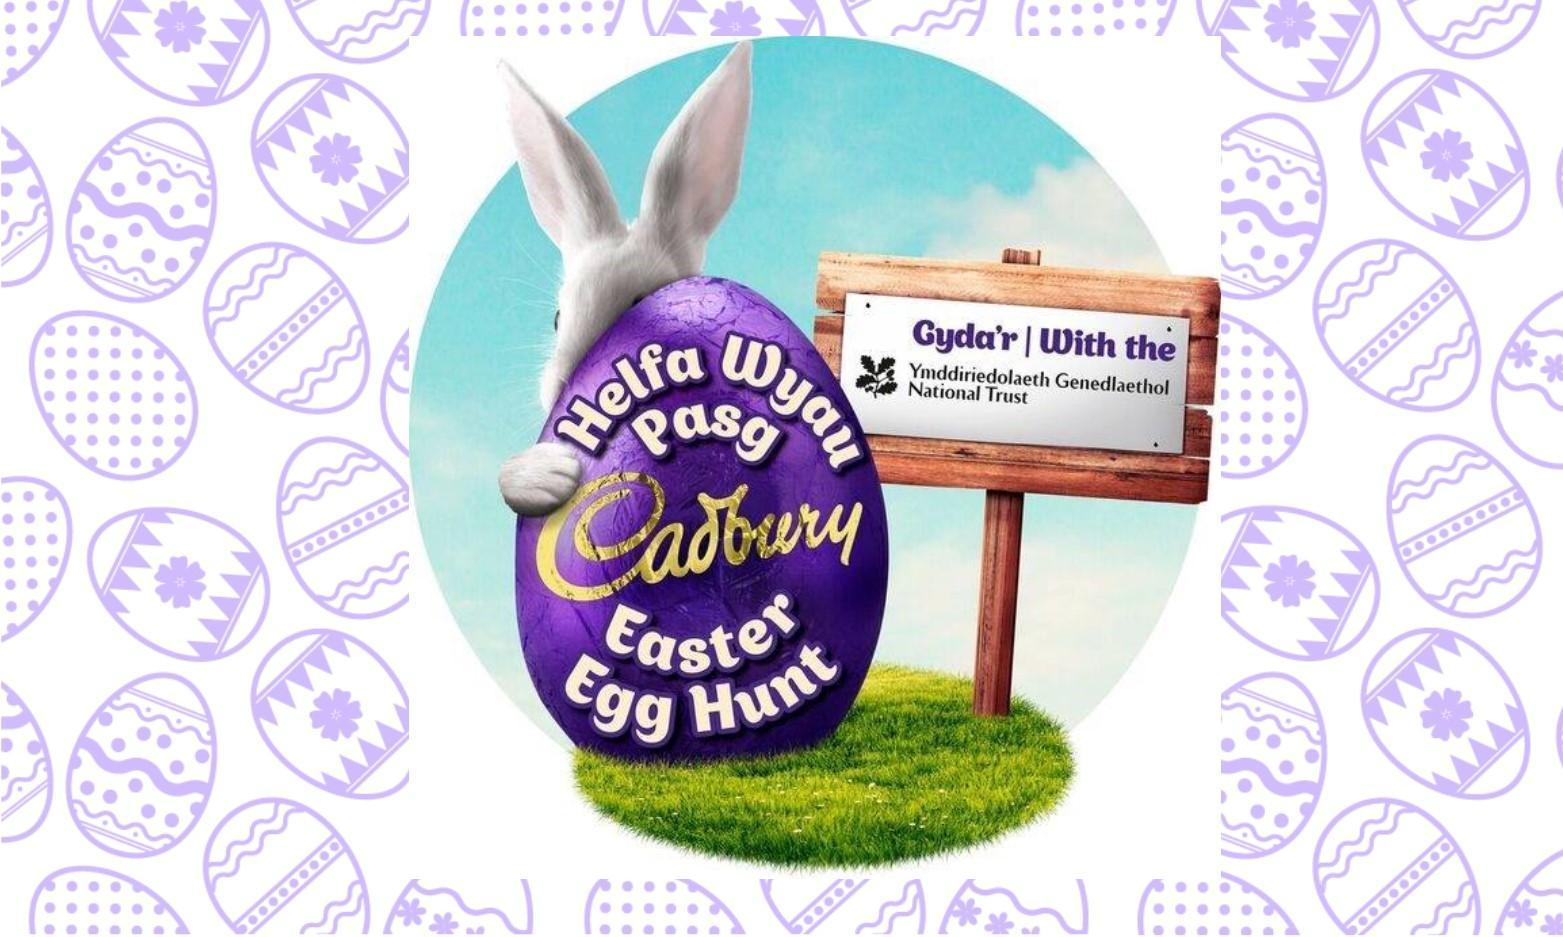 Cadbury Easter Egg Hunt at Aberdulais Tin Works and Waterfall